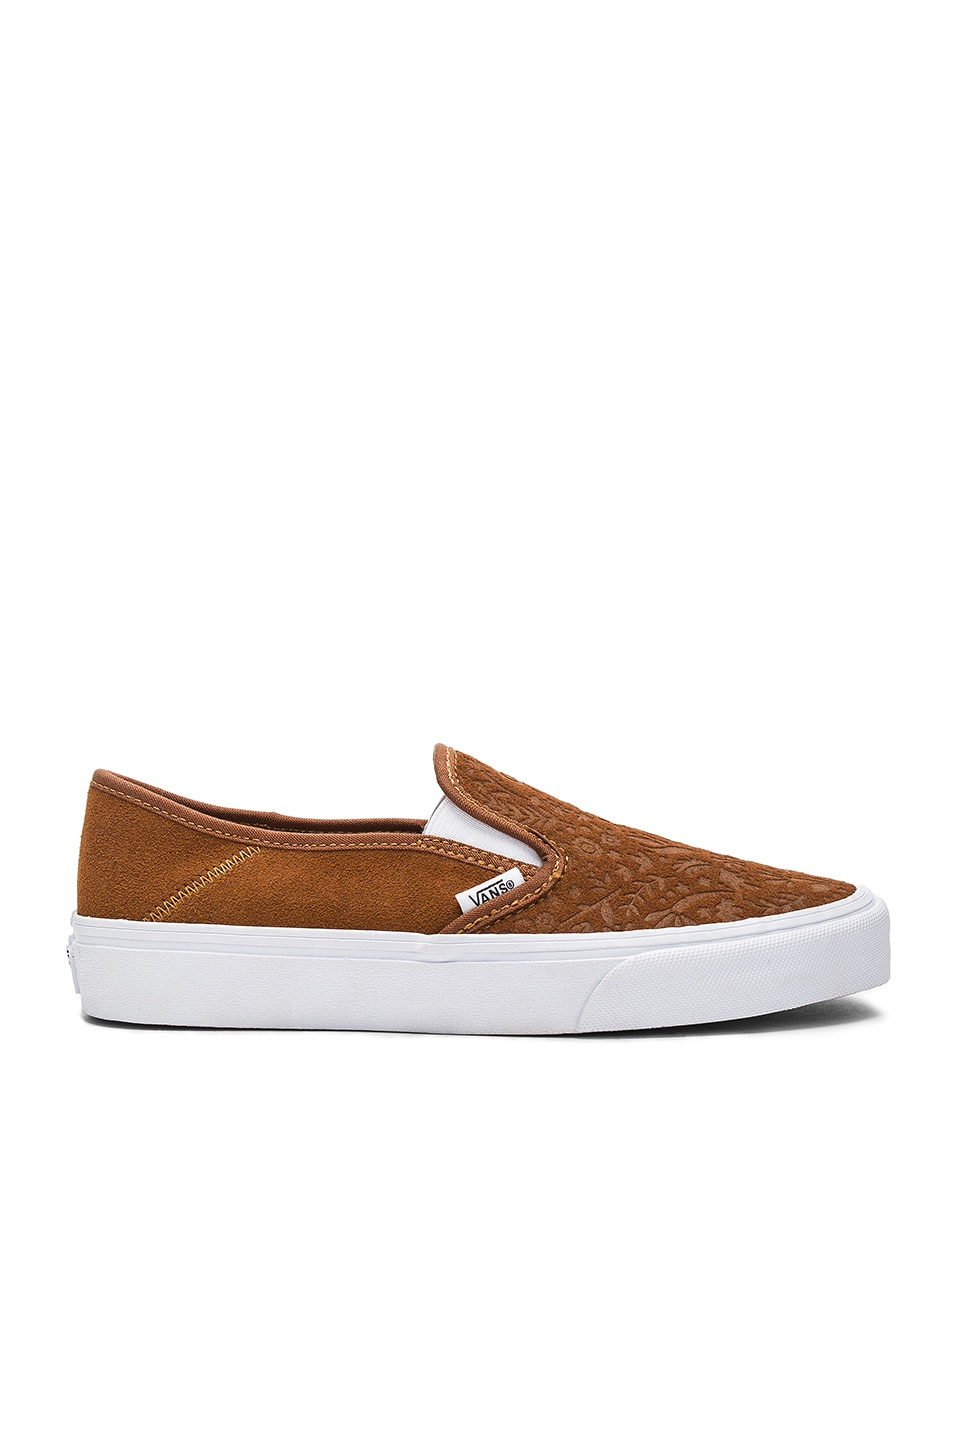 Vans Slip On SF Sneaker in Monks Robe & Flora